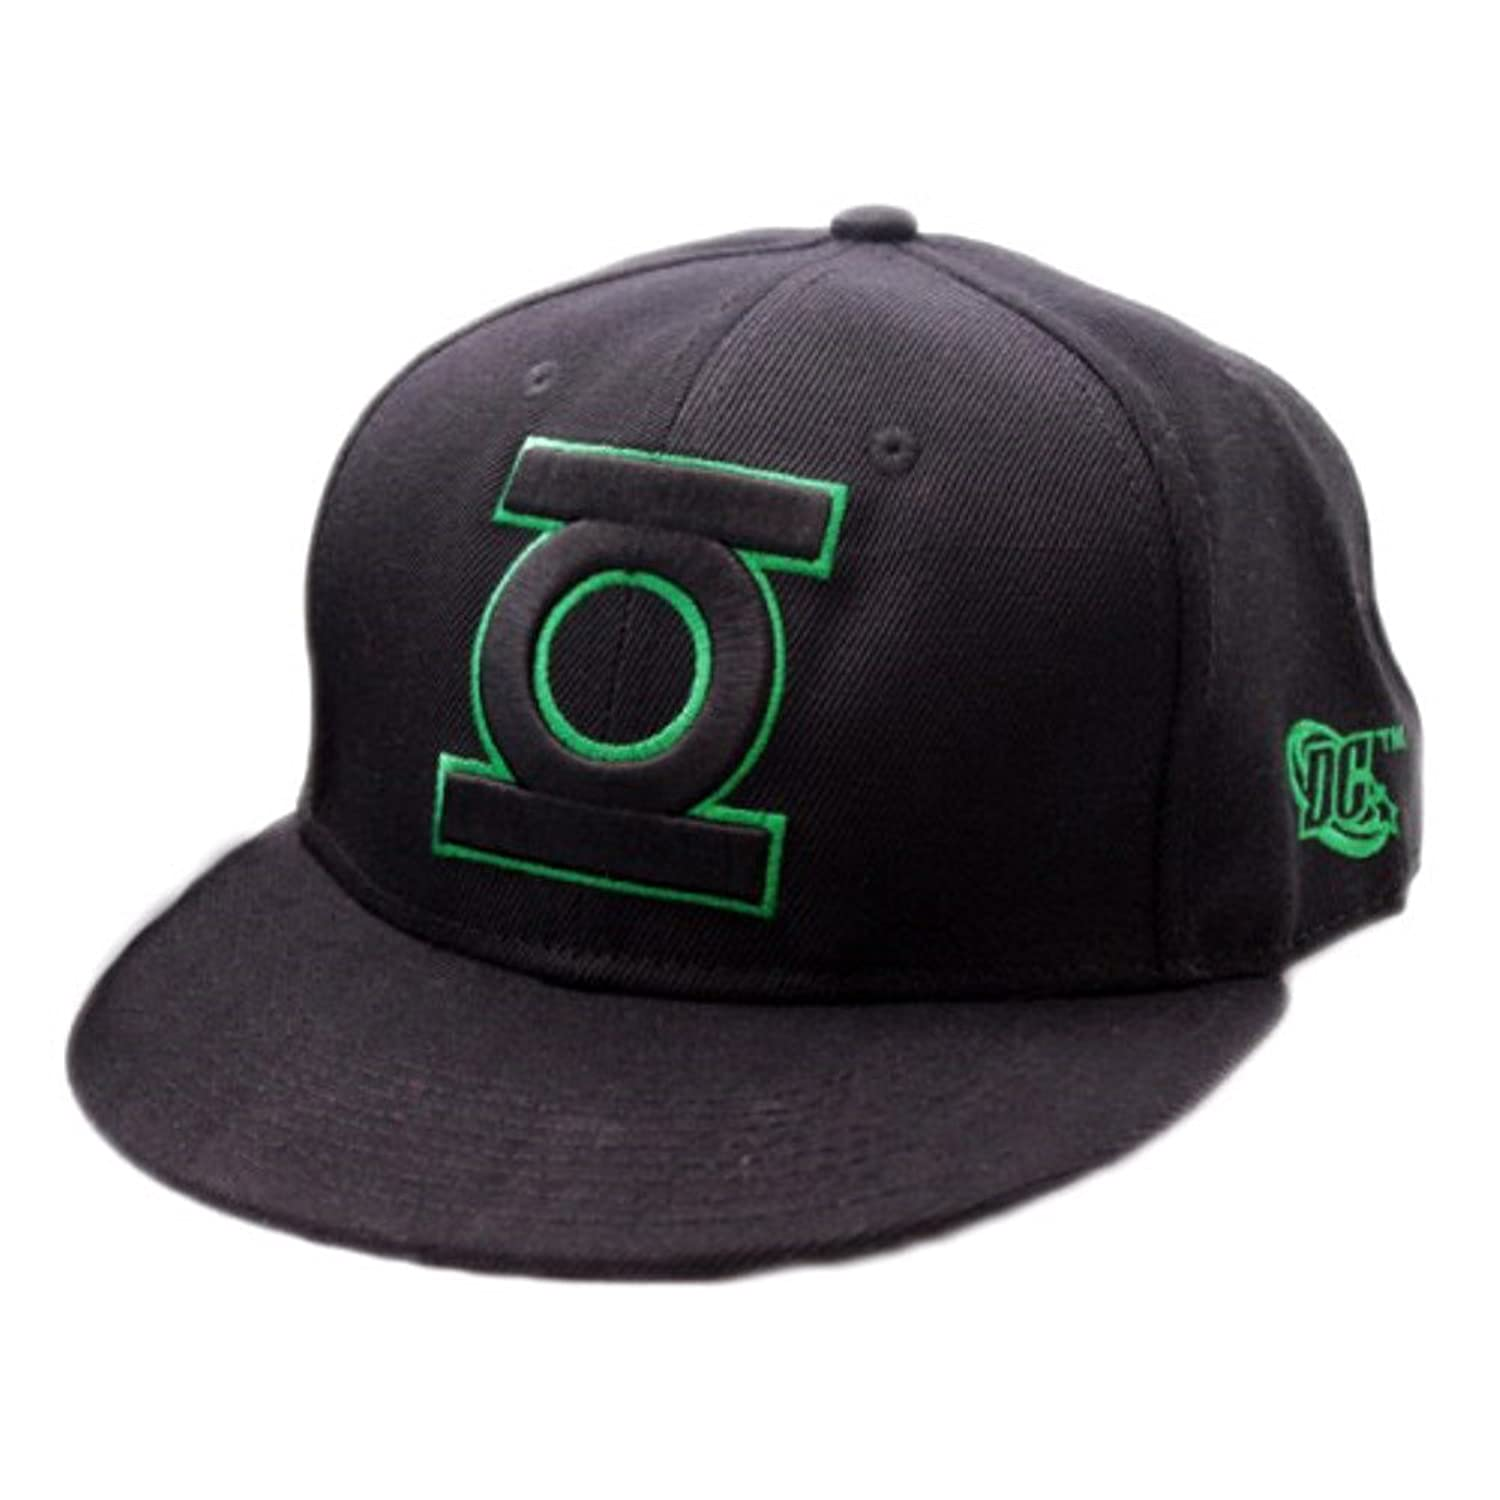 Official Green Lantern Logo Snapback Black Baseball Cap Hat dc comics машинка batcycle